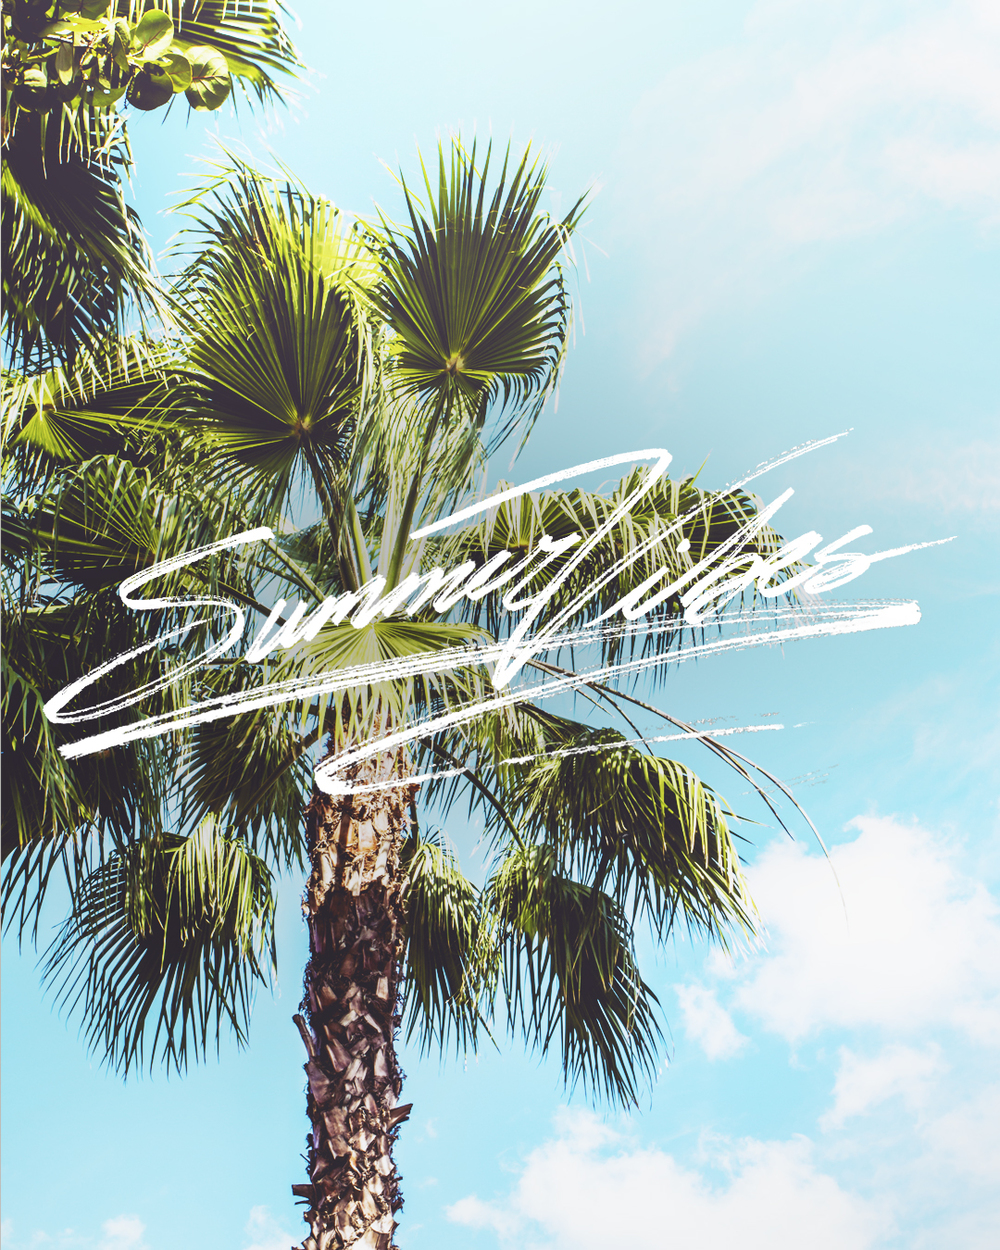 Summer Vibes   Personal lettering project.  (Find the original post here).